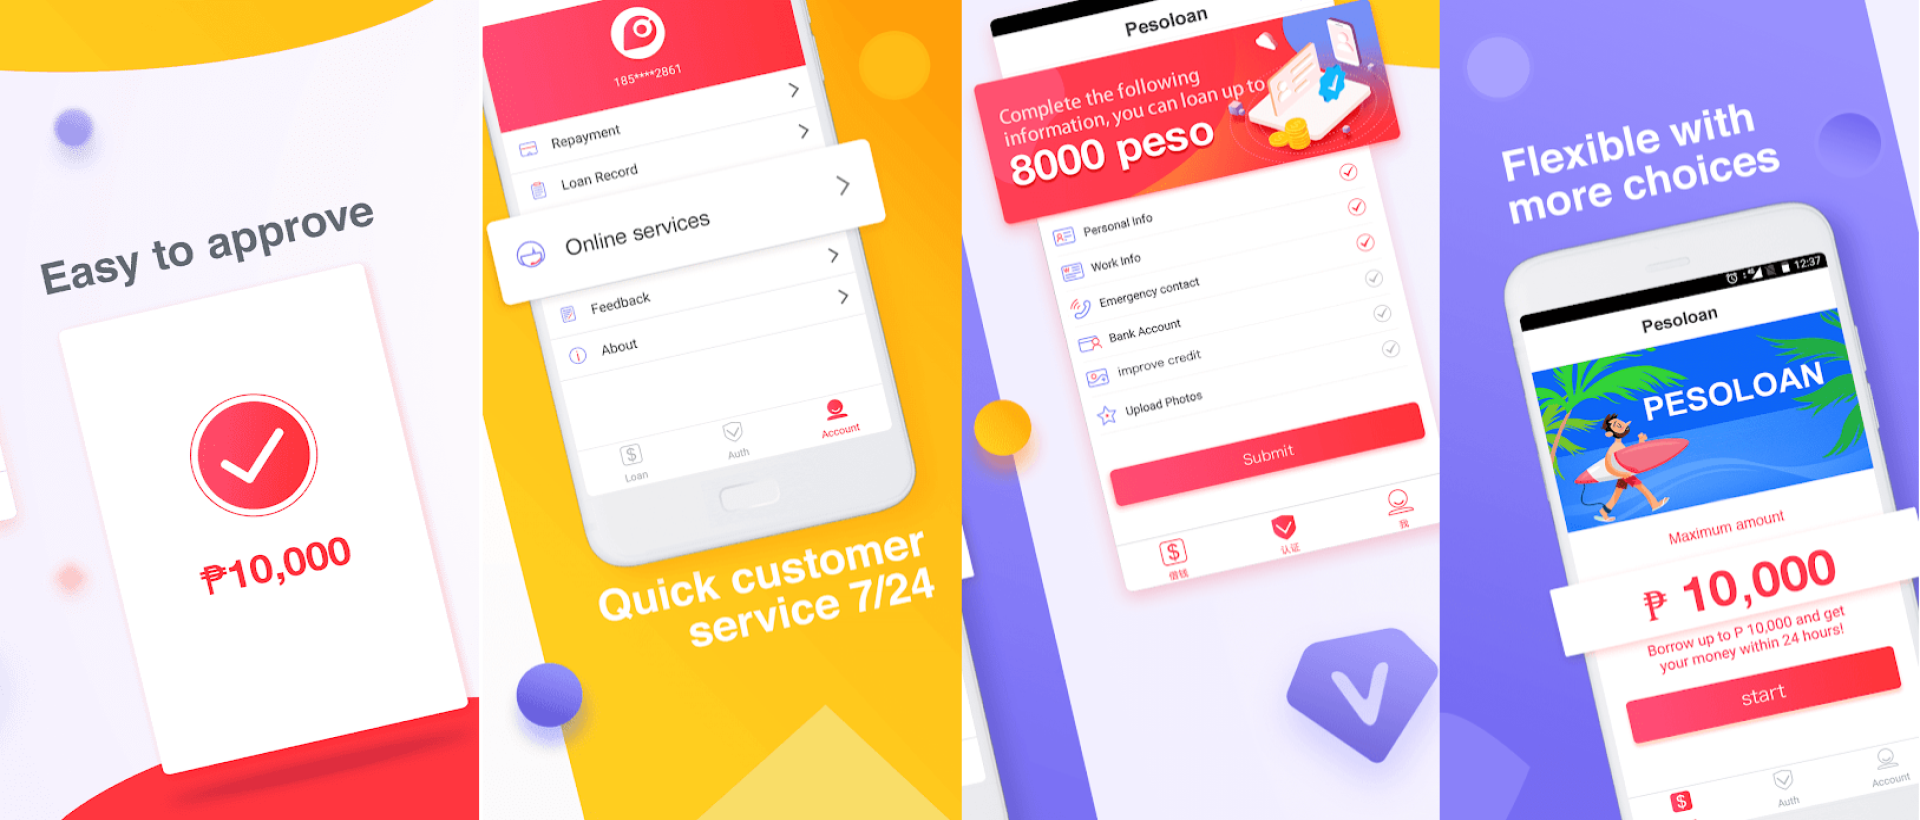 Pesoloan - Quick Cash and Peso Loan Online